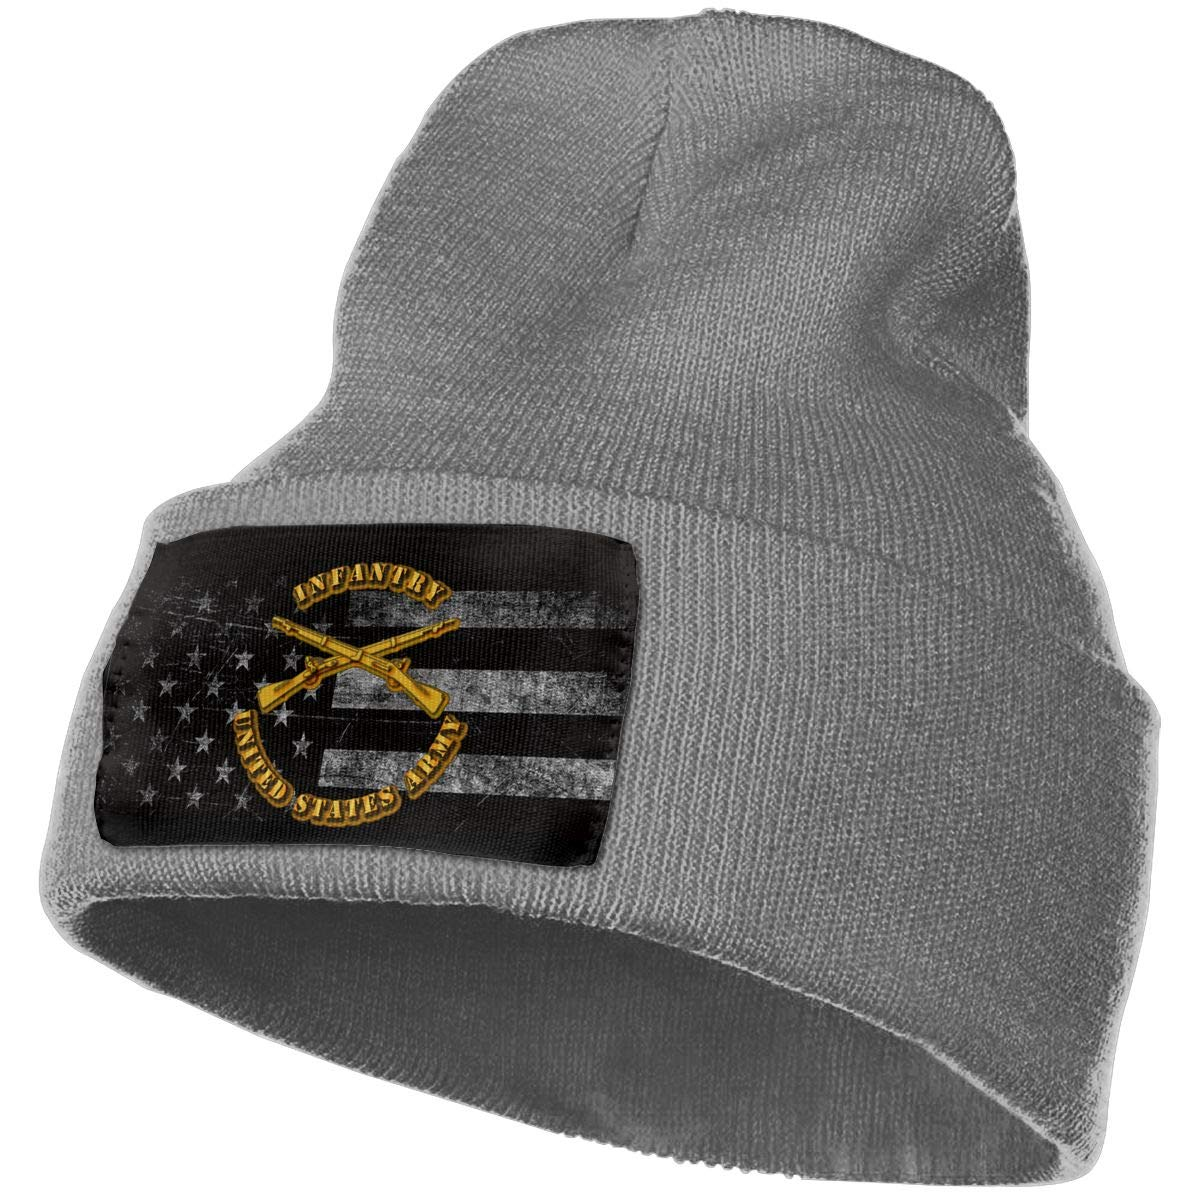 US Army Infantry Mens Beanie Cap Skull Cap Winter Warm Knitting Hats.